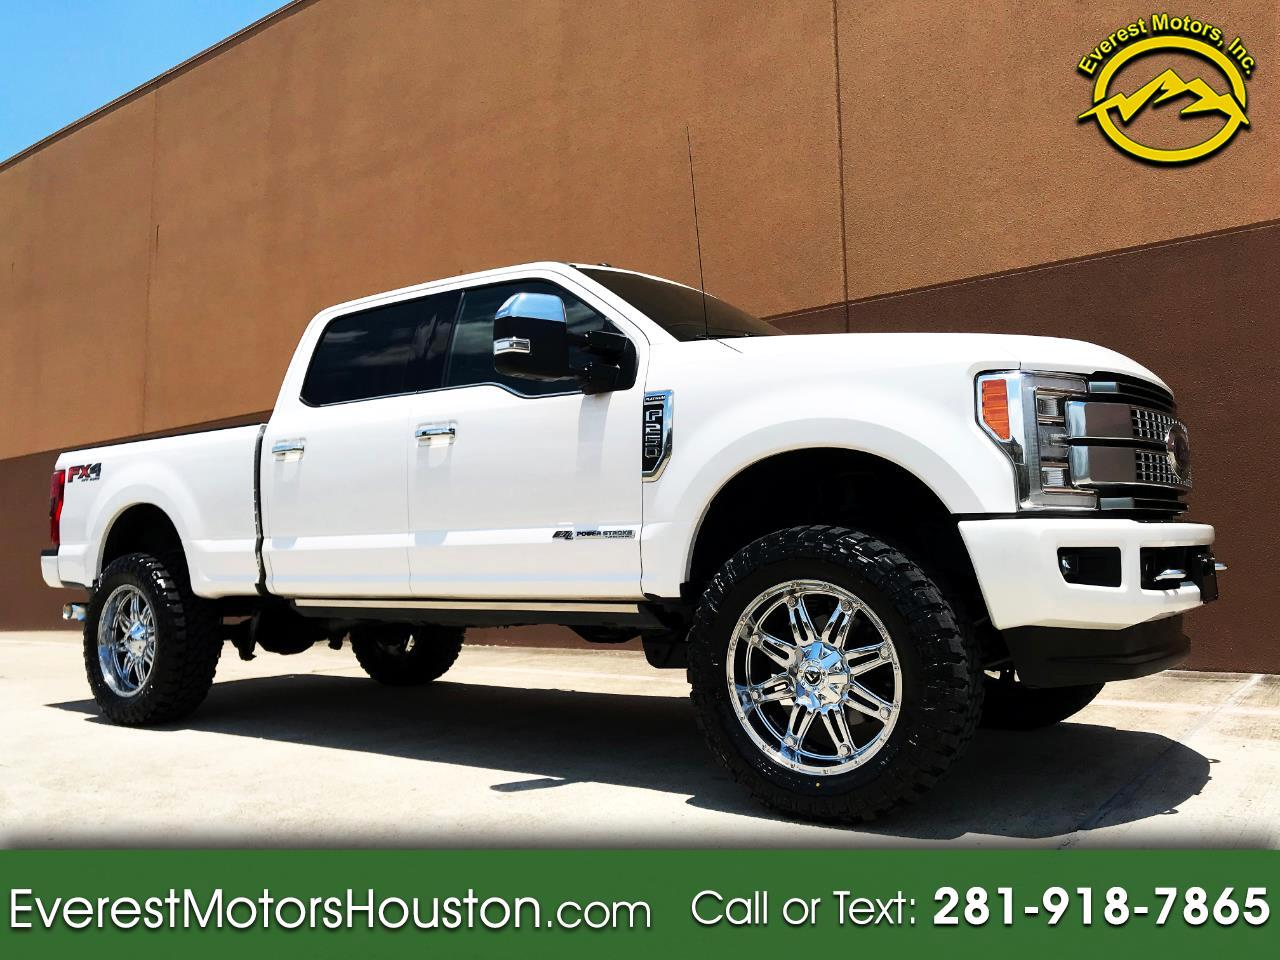 2017 Ford F-250 SD PLATINUM CREW CAB SWB 4WD NAV CAM ROOF LOADED